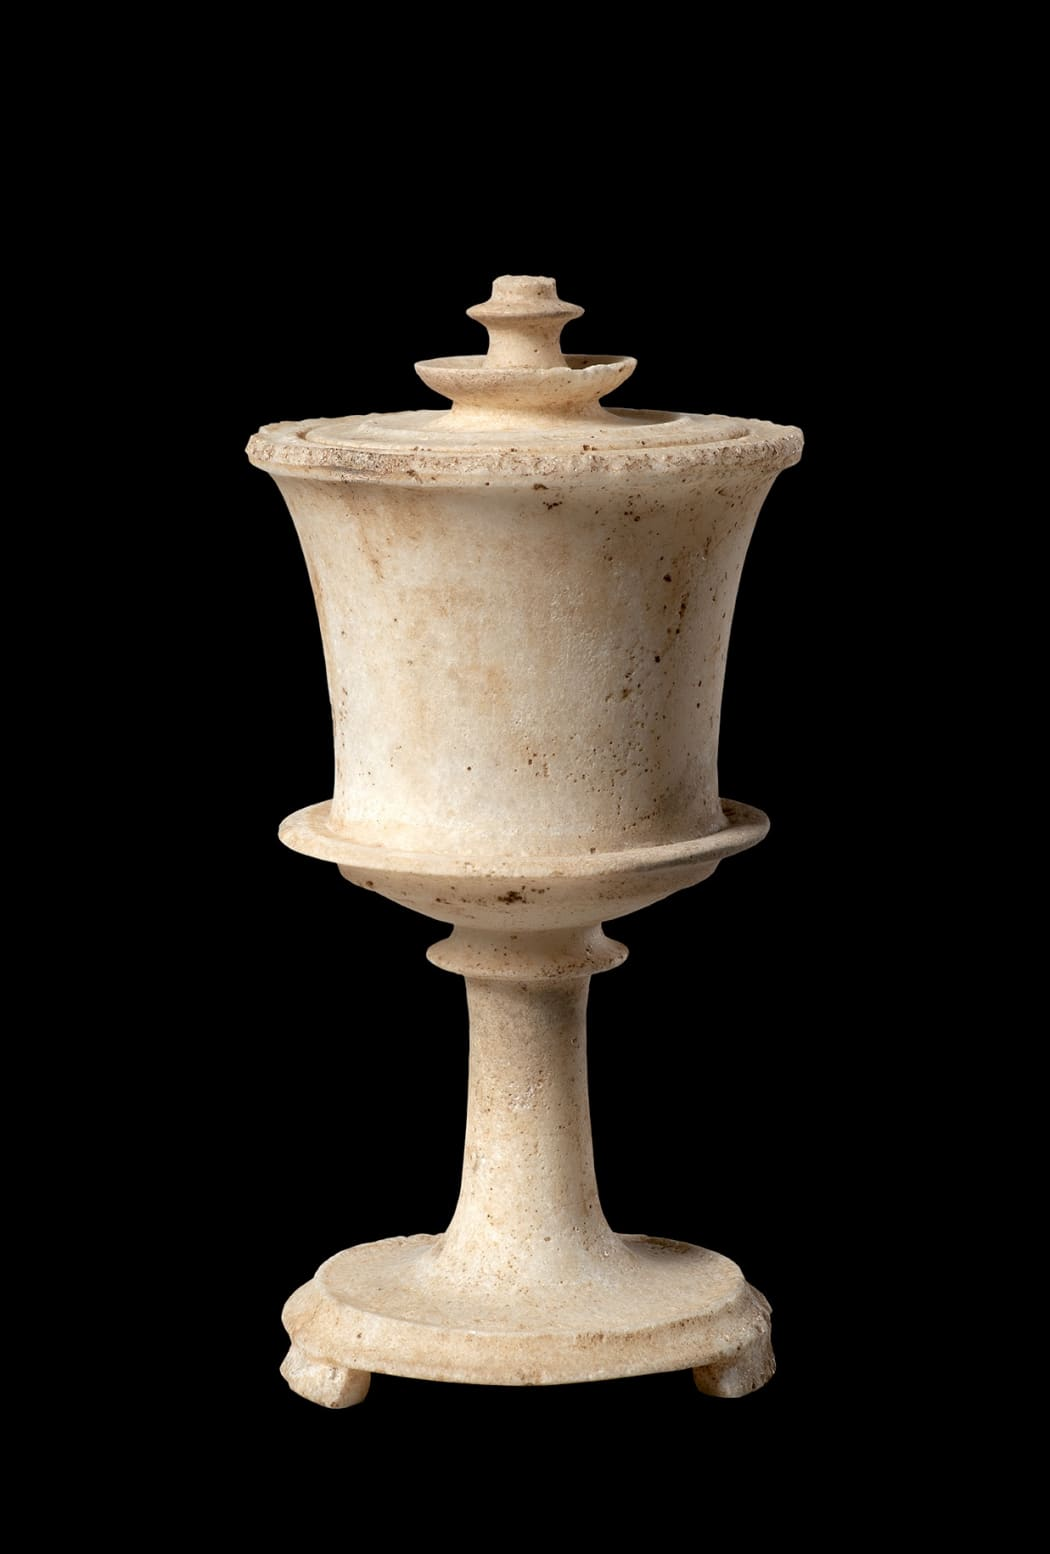 THE SCHUSTER PYXIS, A GREEK MARBLE LIDDED PYXIS, Classical Period, circa 440 - 400 BC